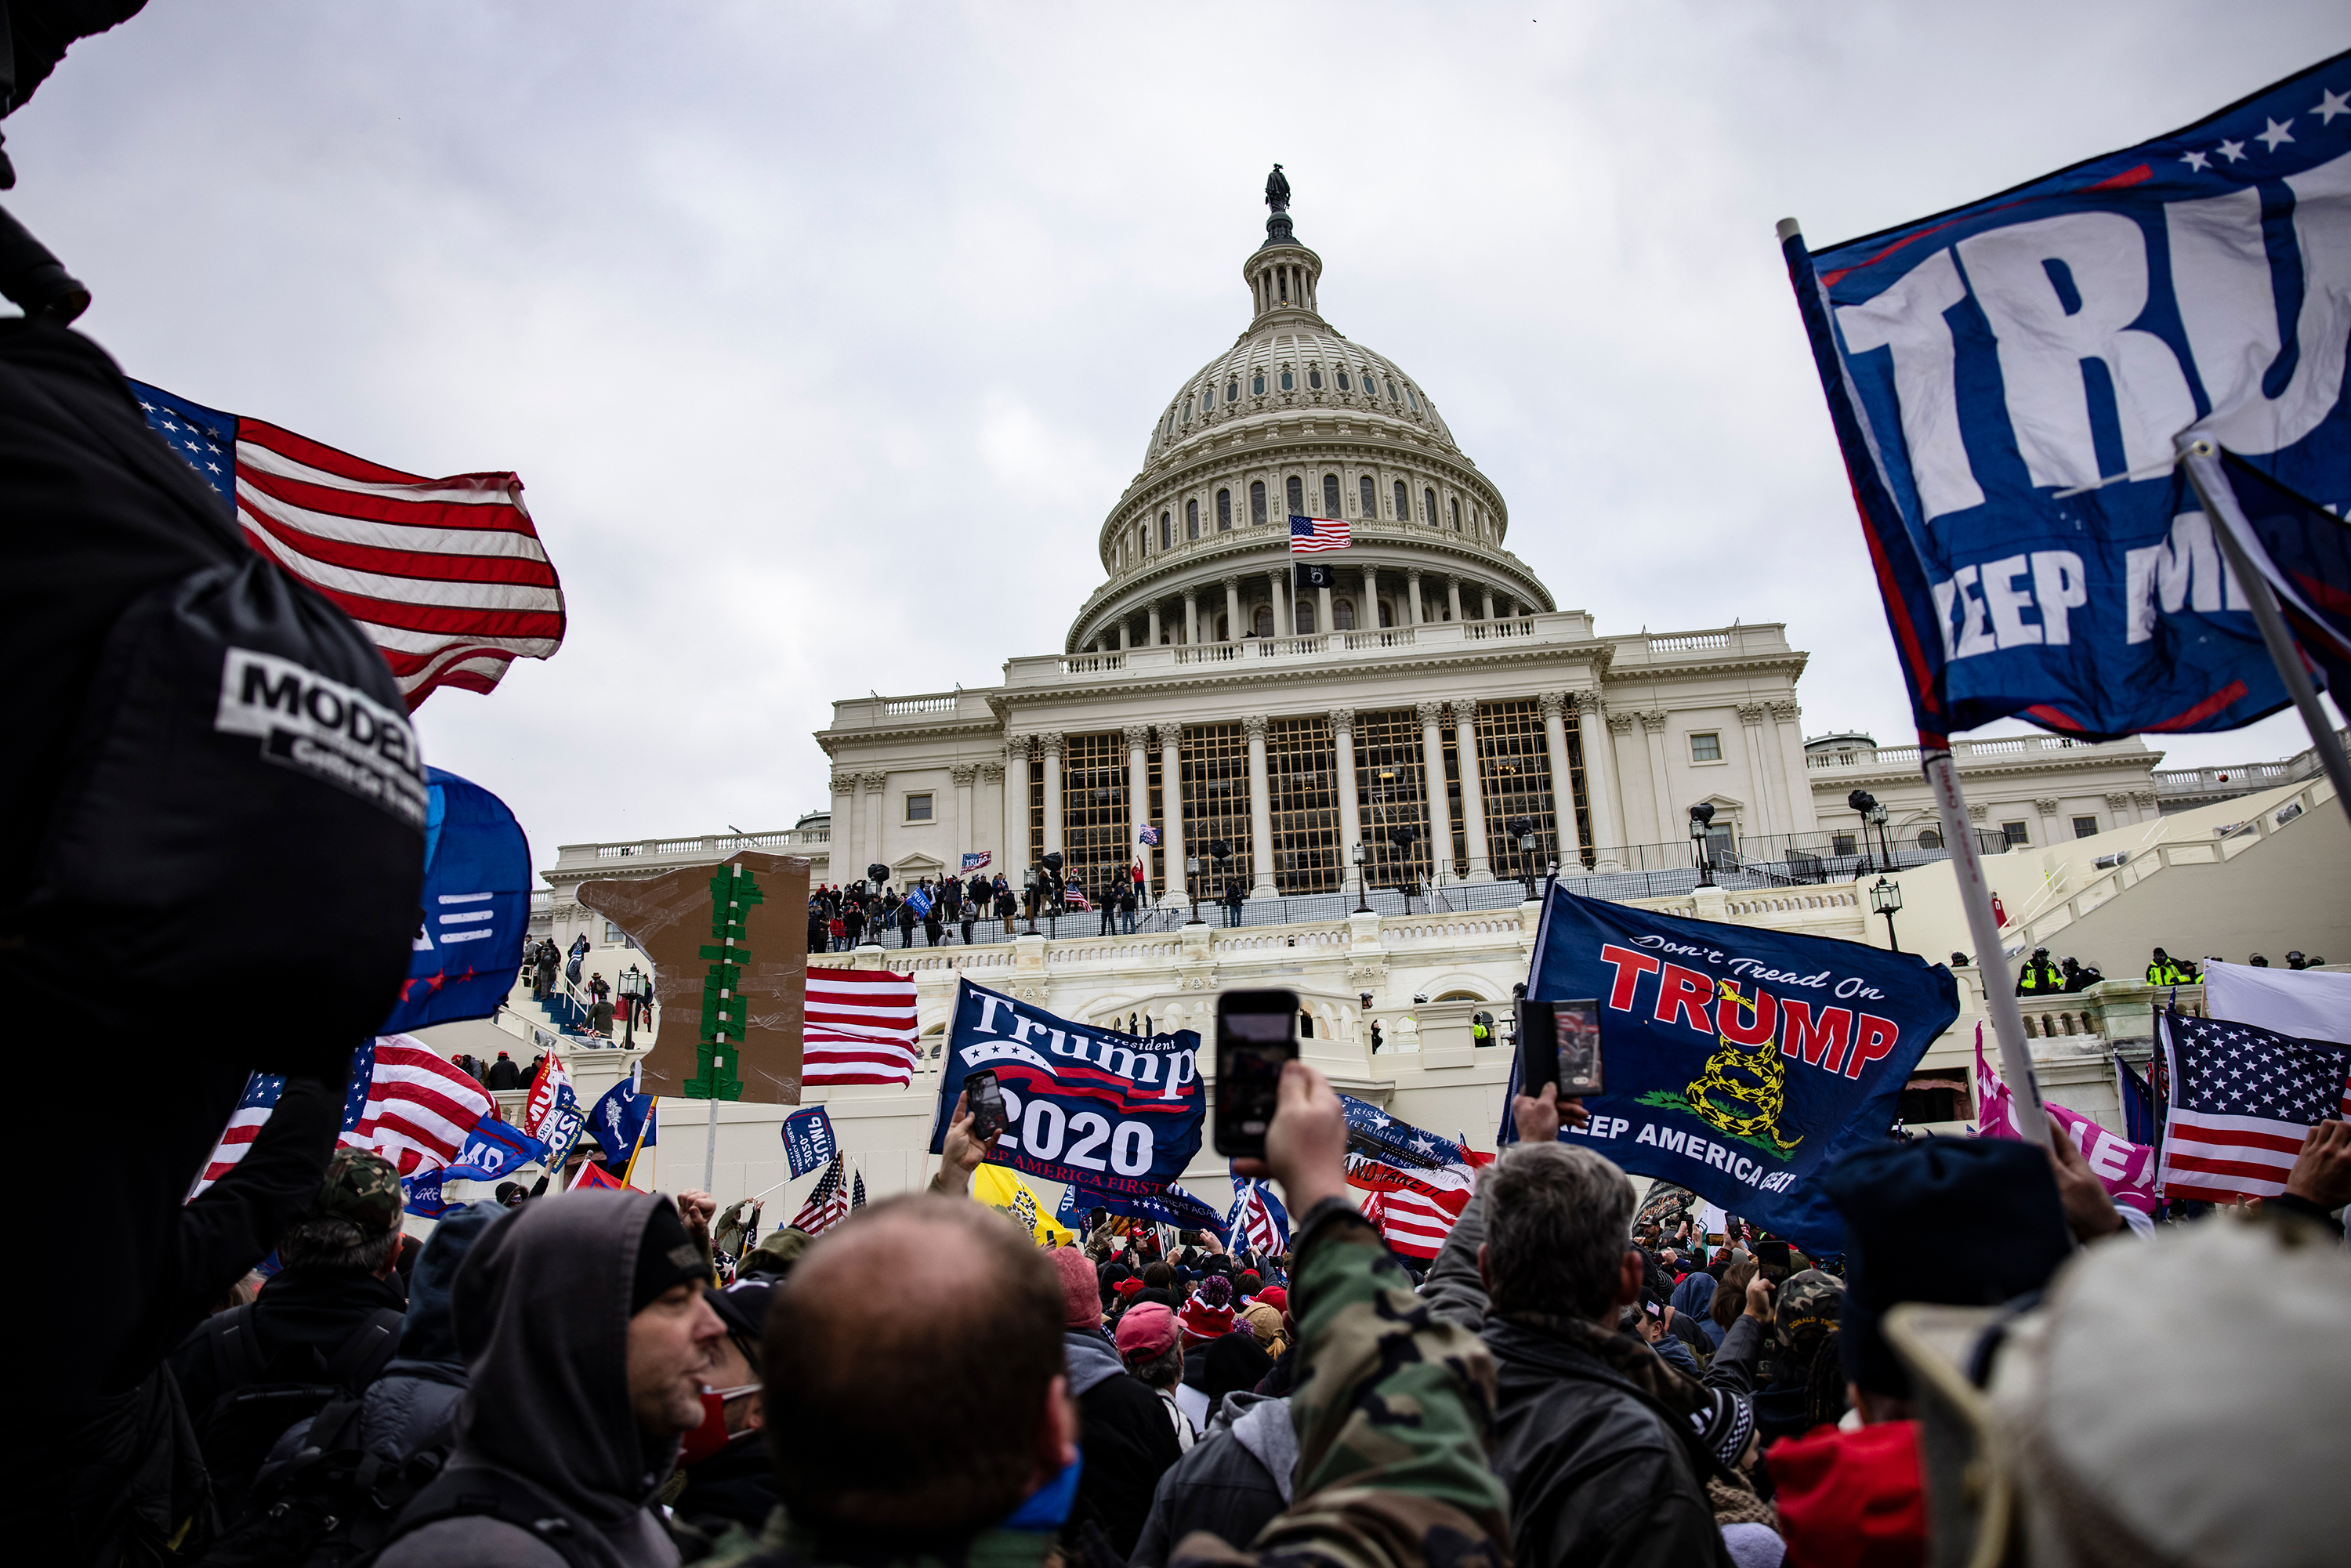 People storm the Capitol building on January 6, in Washington, DC.